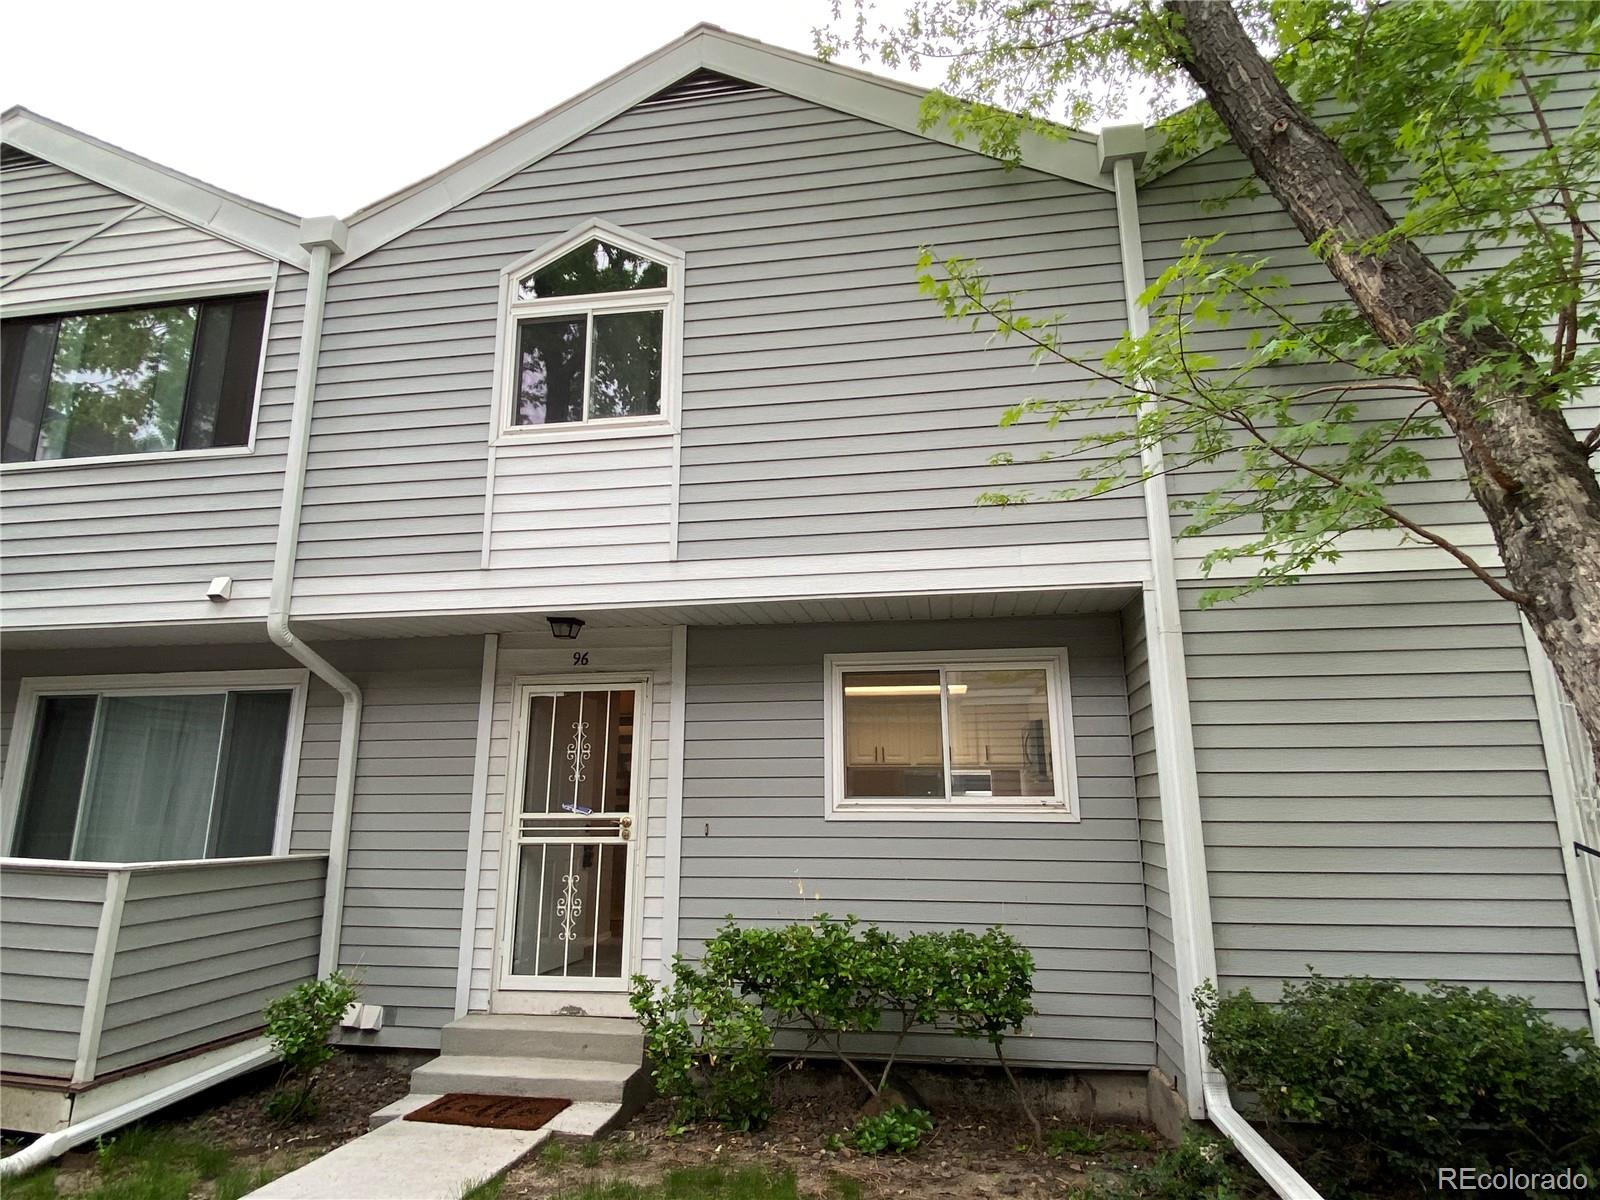 """This is an AFFORDABLE HOUSING PROGRAM PROPERTY offered by Elevation Community Land Trust. You must qualify for the program. Income and other restrictions apply. Income for a family size of 1 cannot exceed $55,950, Family size of 2 cannot exceed $63,950, family size of 3 cannot exceed $71,950, family size of 4 cannot exceed $79,900, family size of 5 cannot exceed $86,300, family size of 6 cannot exceed $92,700. Elevation Community Land Trust is proud to offer families the opportunity to purchase homes through a land trust model, a proven tool for creating and preserving accessible, inclusive communities for generations!  THIS PROGRAM IS NOT FOR INVESTORS. To learn more about the program please visit WWW.ELEVATIONCLT.ORG and click on the 'Start Here"""" button to begin your homeownership journey.  Buyer and Buyer's Broker to verify all information contained in this listing.  This is a beautiful 2 bedroom home that needs nothing!  You may choose to use the basement room as a bedroom as it has an egress window and closet or use as a family room complete with a wet bar!  Upstairs has two master bedroom suites complete with their own FULL bathrooms - beautifully done! Great wood burning fireplace for those cold nights, 2 covered parking spaces, awesome kitchen with all new stainless steel appliances and beautiful hardwood floors!  This home needs nothing, move in and relax, all the work has been done!  Listing Broker is an employee of the seller and will not receive a commission for the sale of this property.  BETTER PICTURES COMING SOON!!!"""